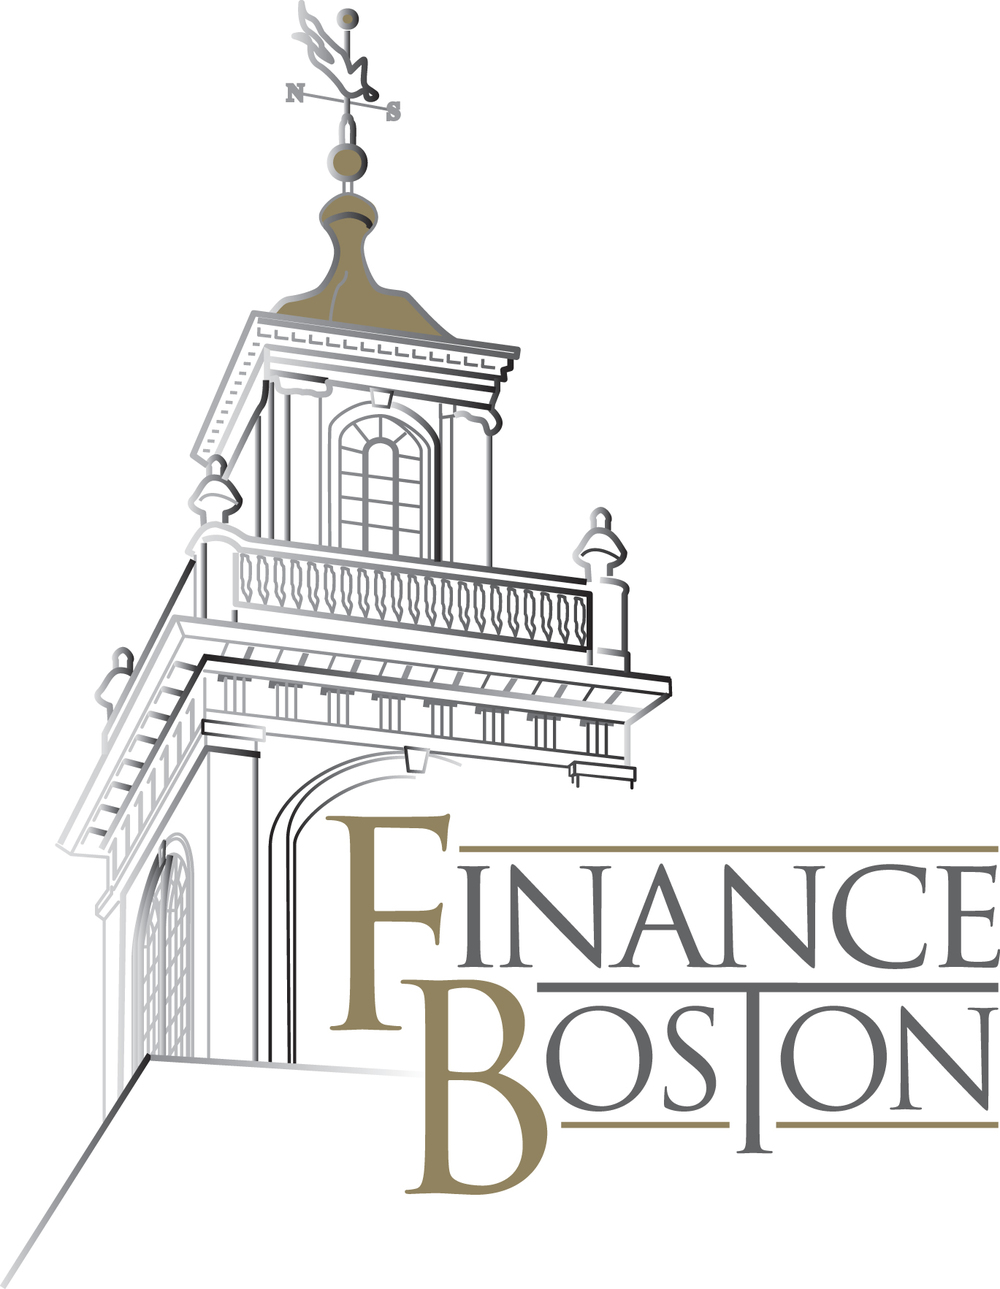 FinanceBoston Logo.jpg